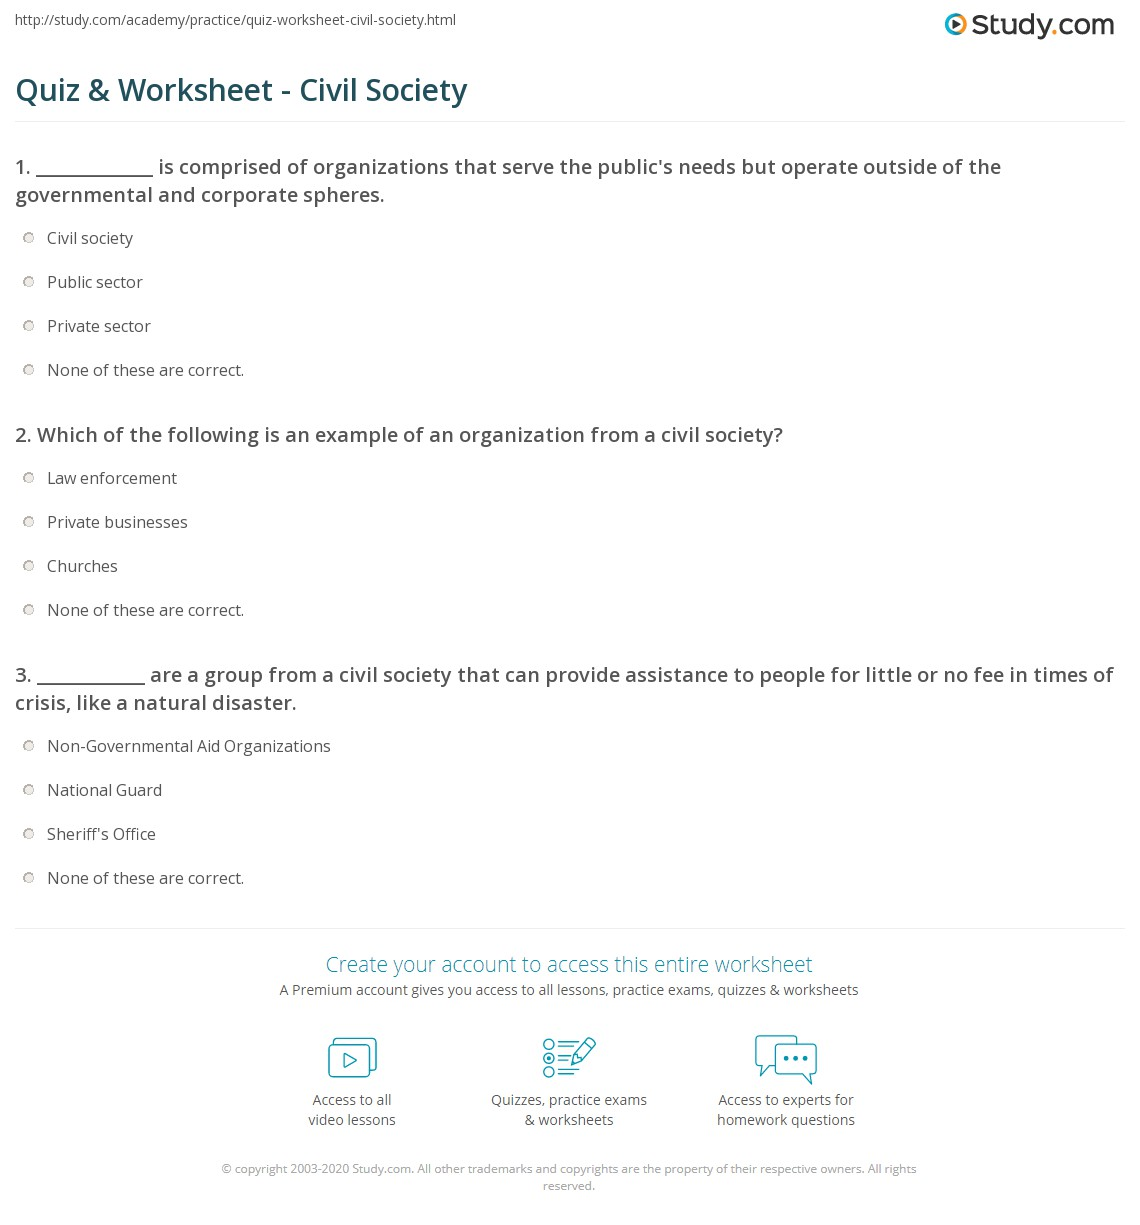 Case study civil society organization (cso) sample selection grid.